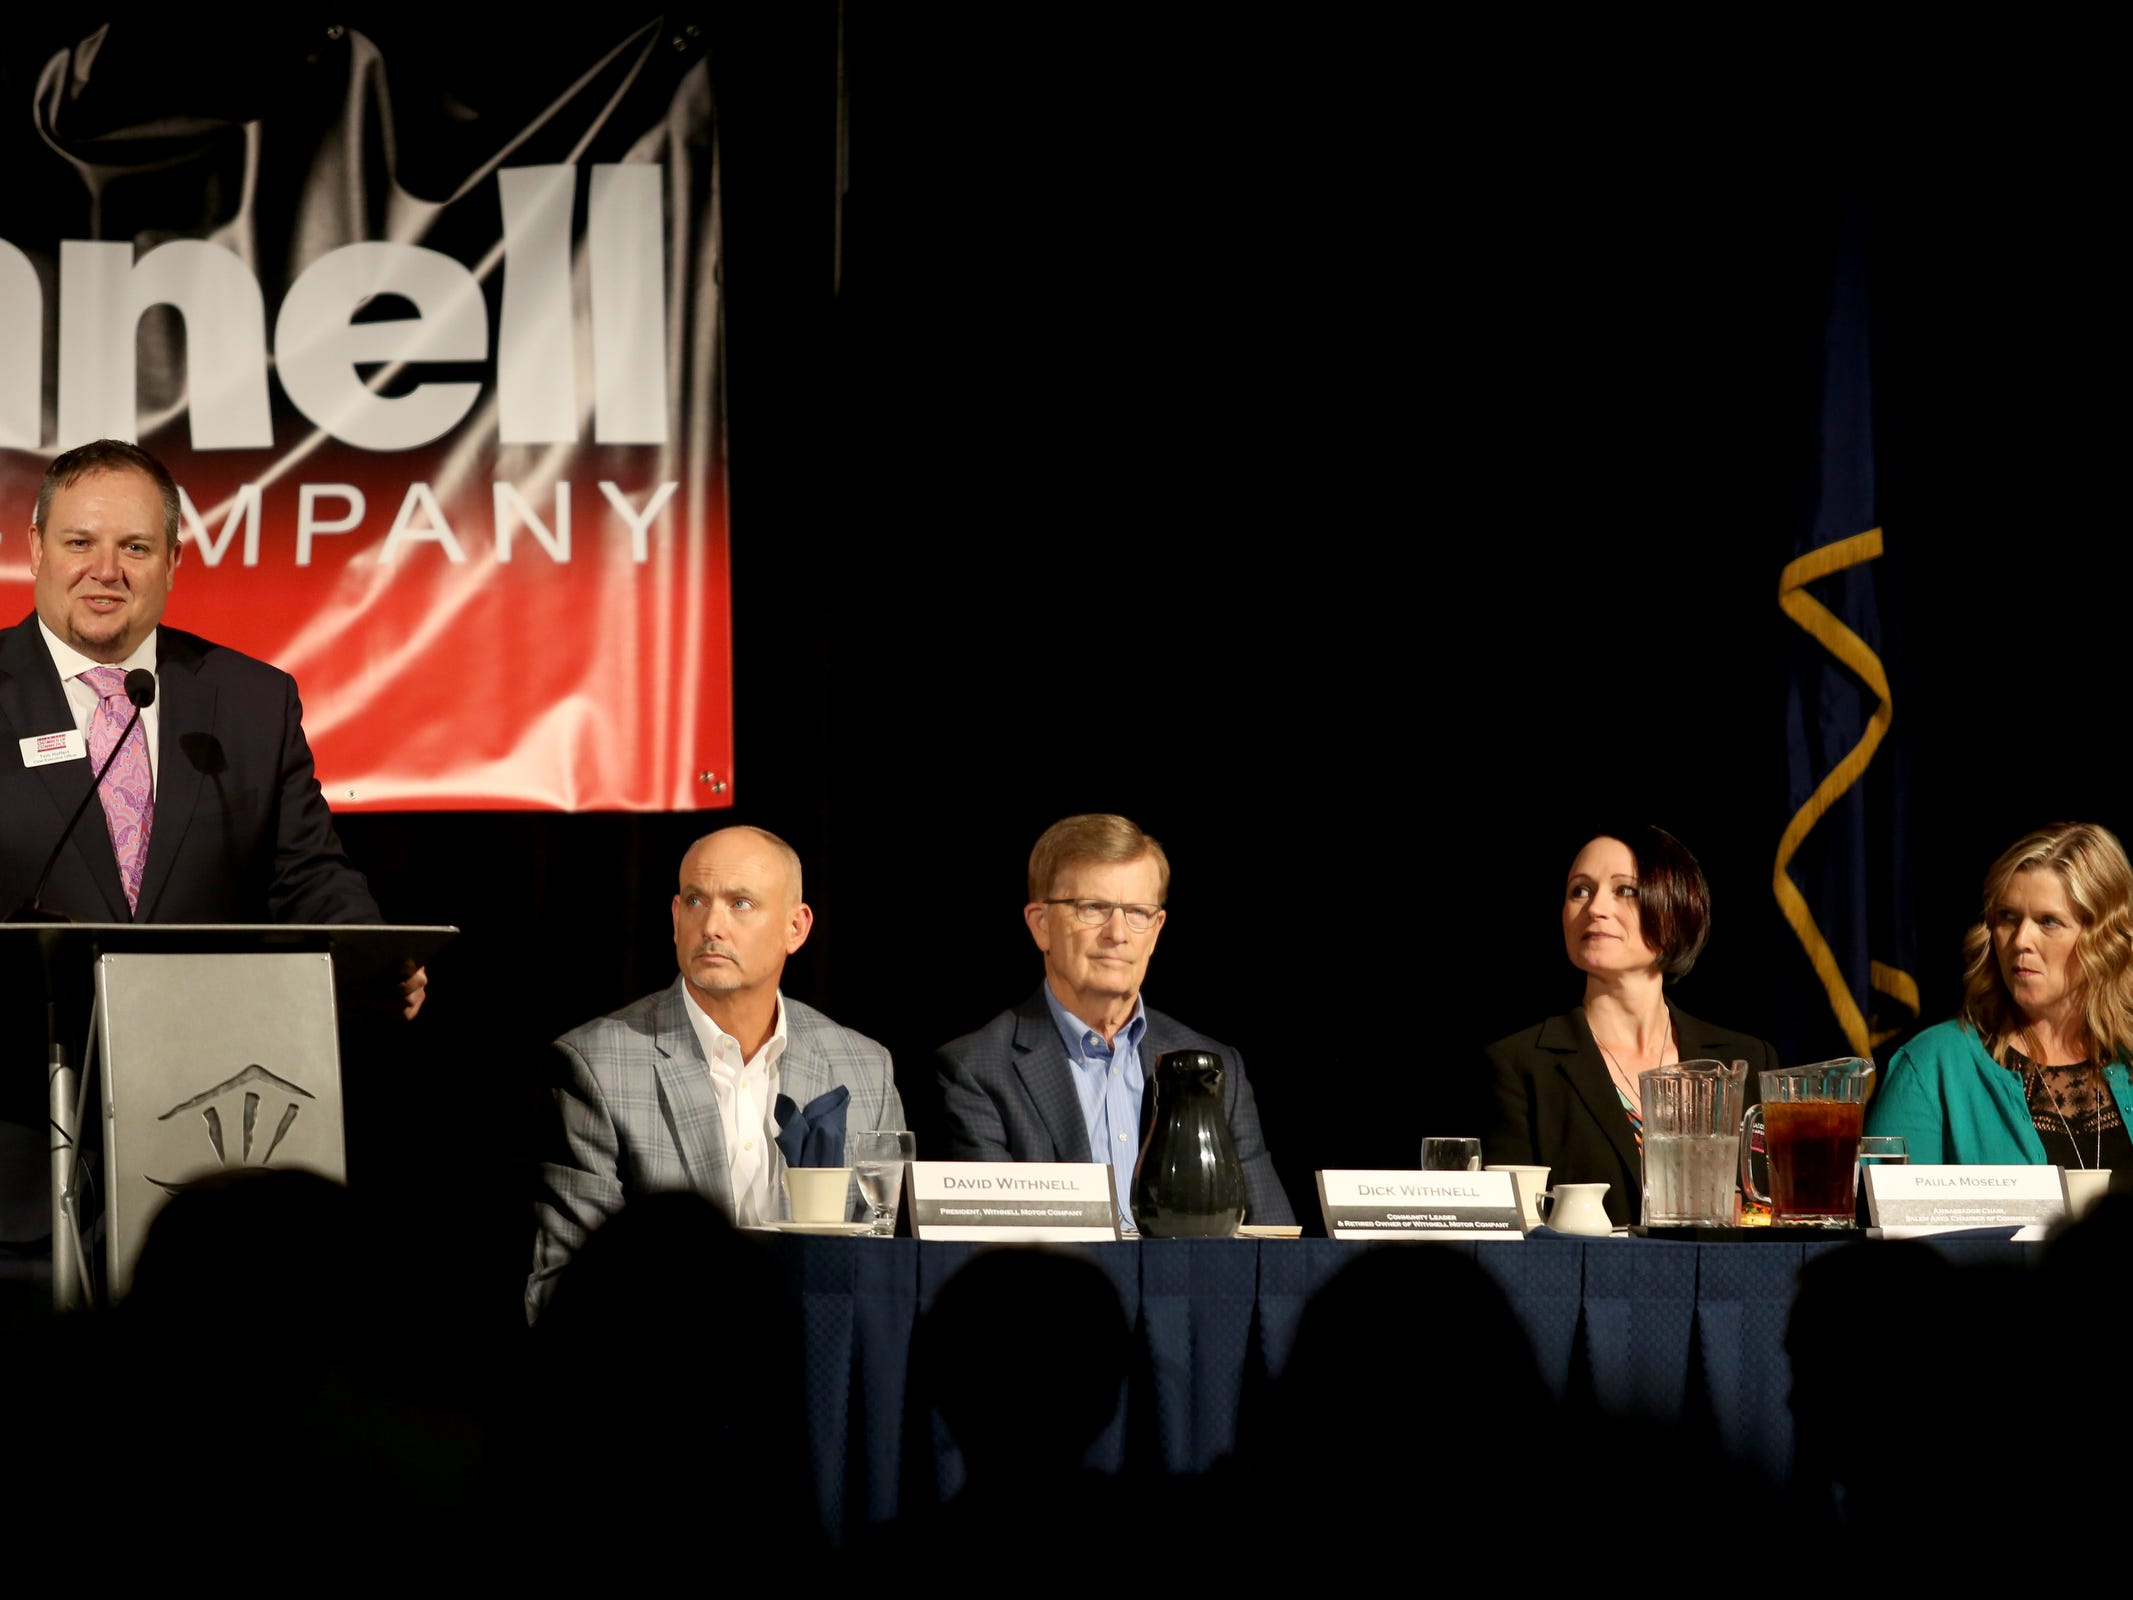 Tom Hoffert, from left, the chief executive officer of the Salem Area Chamber of Commerce, speaks as David Withnell, Dick Withnell, Paula Moseley and Barb Bamford sit at the head table during the Salem Area Chamber of Commerce monthly Forum Speaker Series at the Salem Convention Center on May 13, 2019.